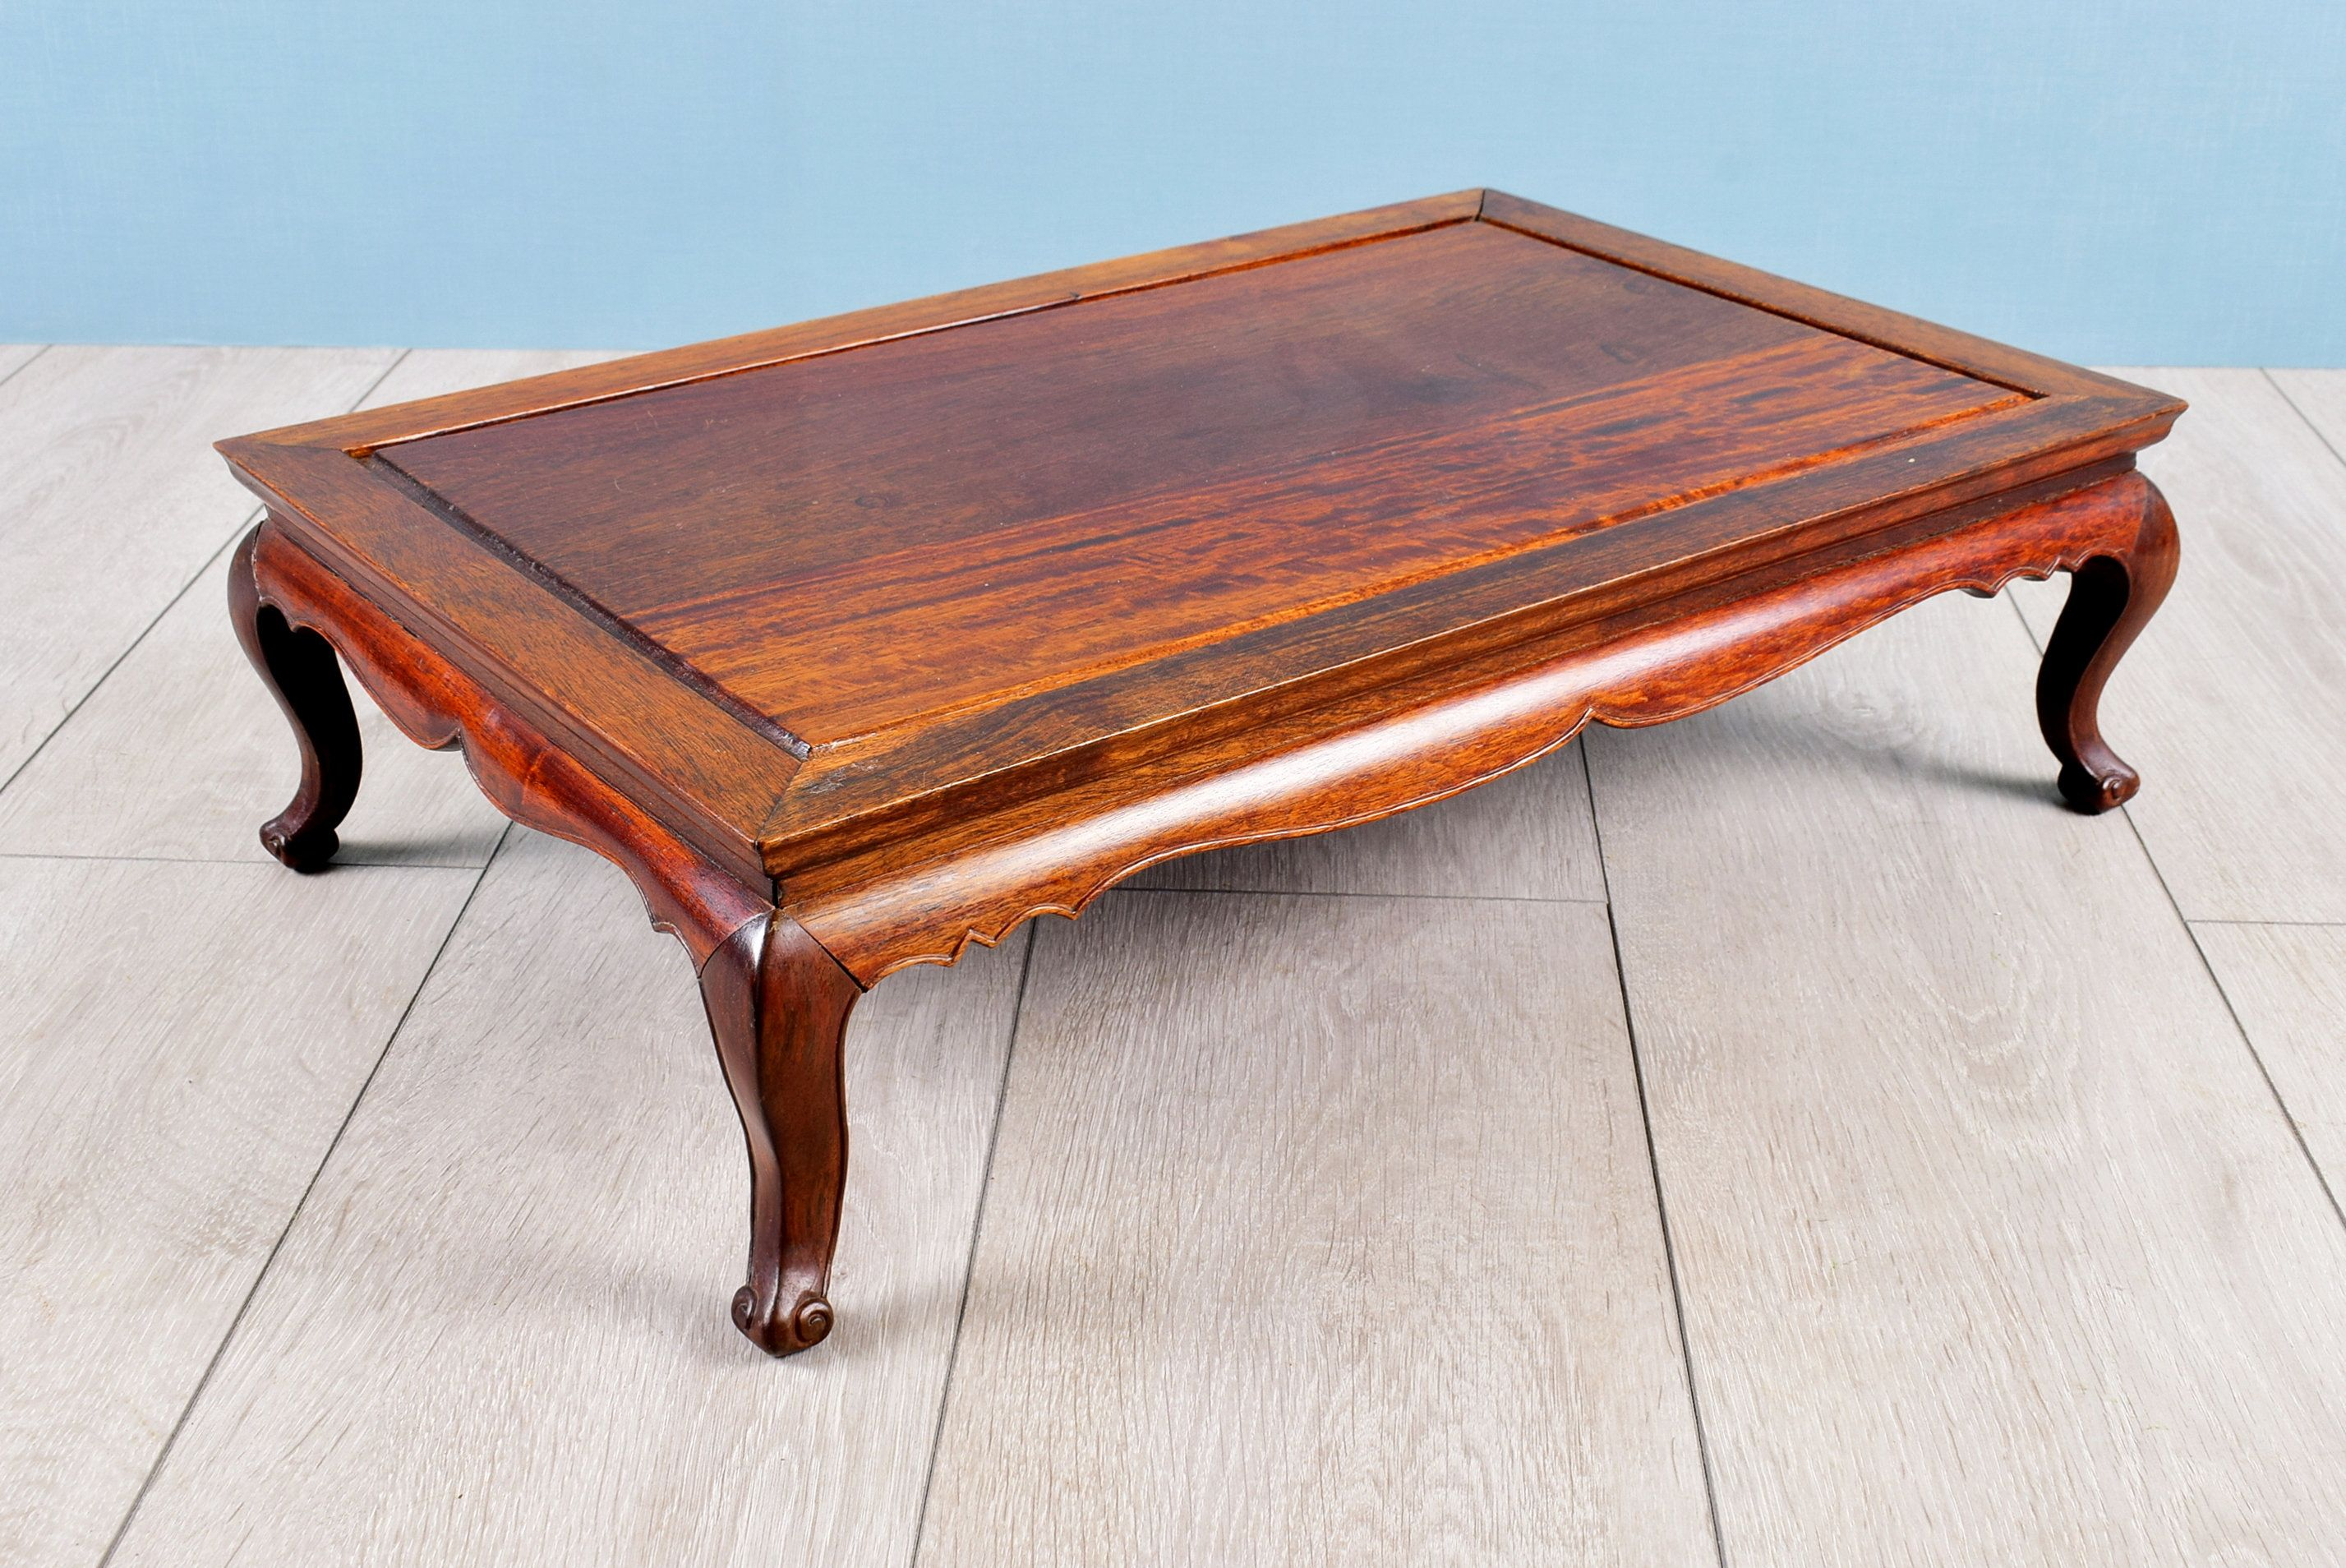 Chinese Antique Display Stand Asian Low Coffee Table In Etsy Coffee Table Family Room Furniture Low Coffee Table [ 1908 x 2855 Pixel ]